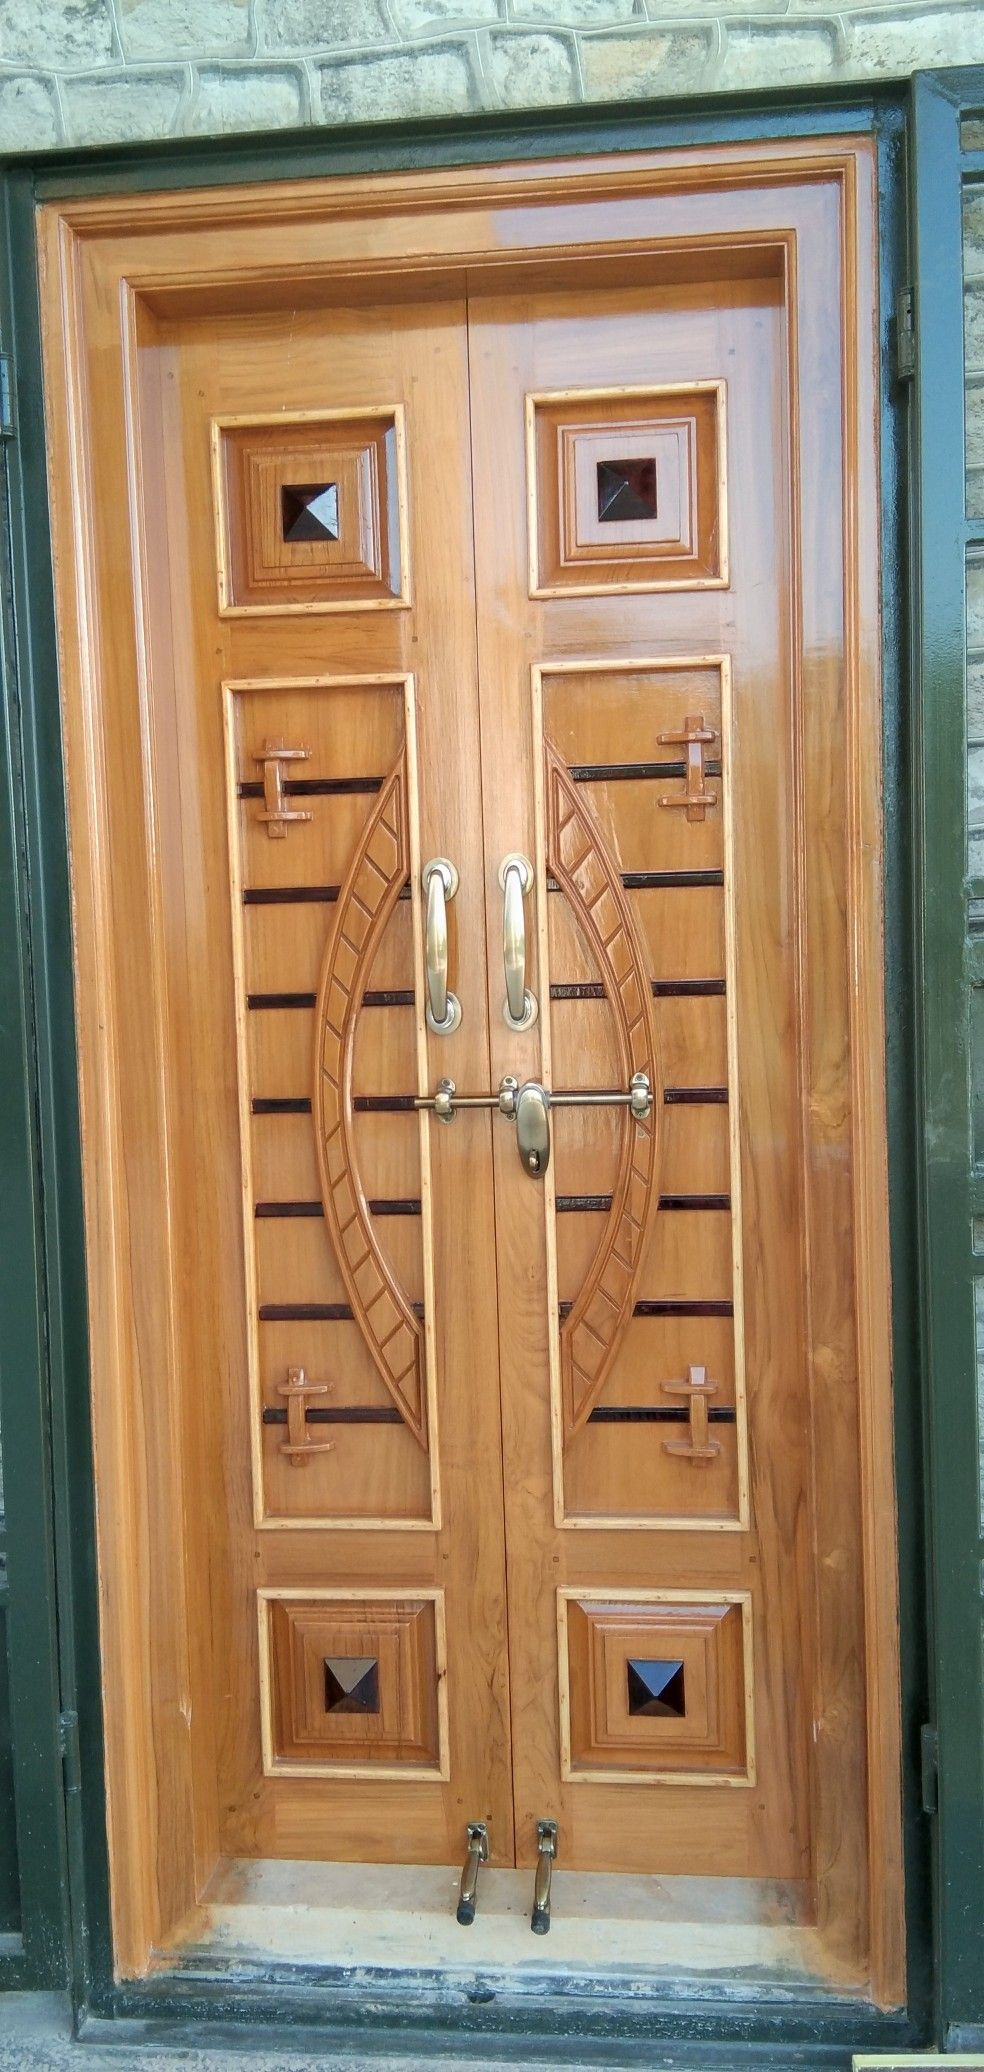 Sri Krishna Wood Works9902379525 Wooden Main Door Design Door Design Wood Front Door Design Wood